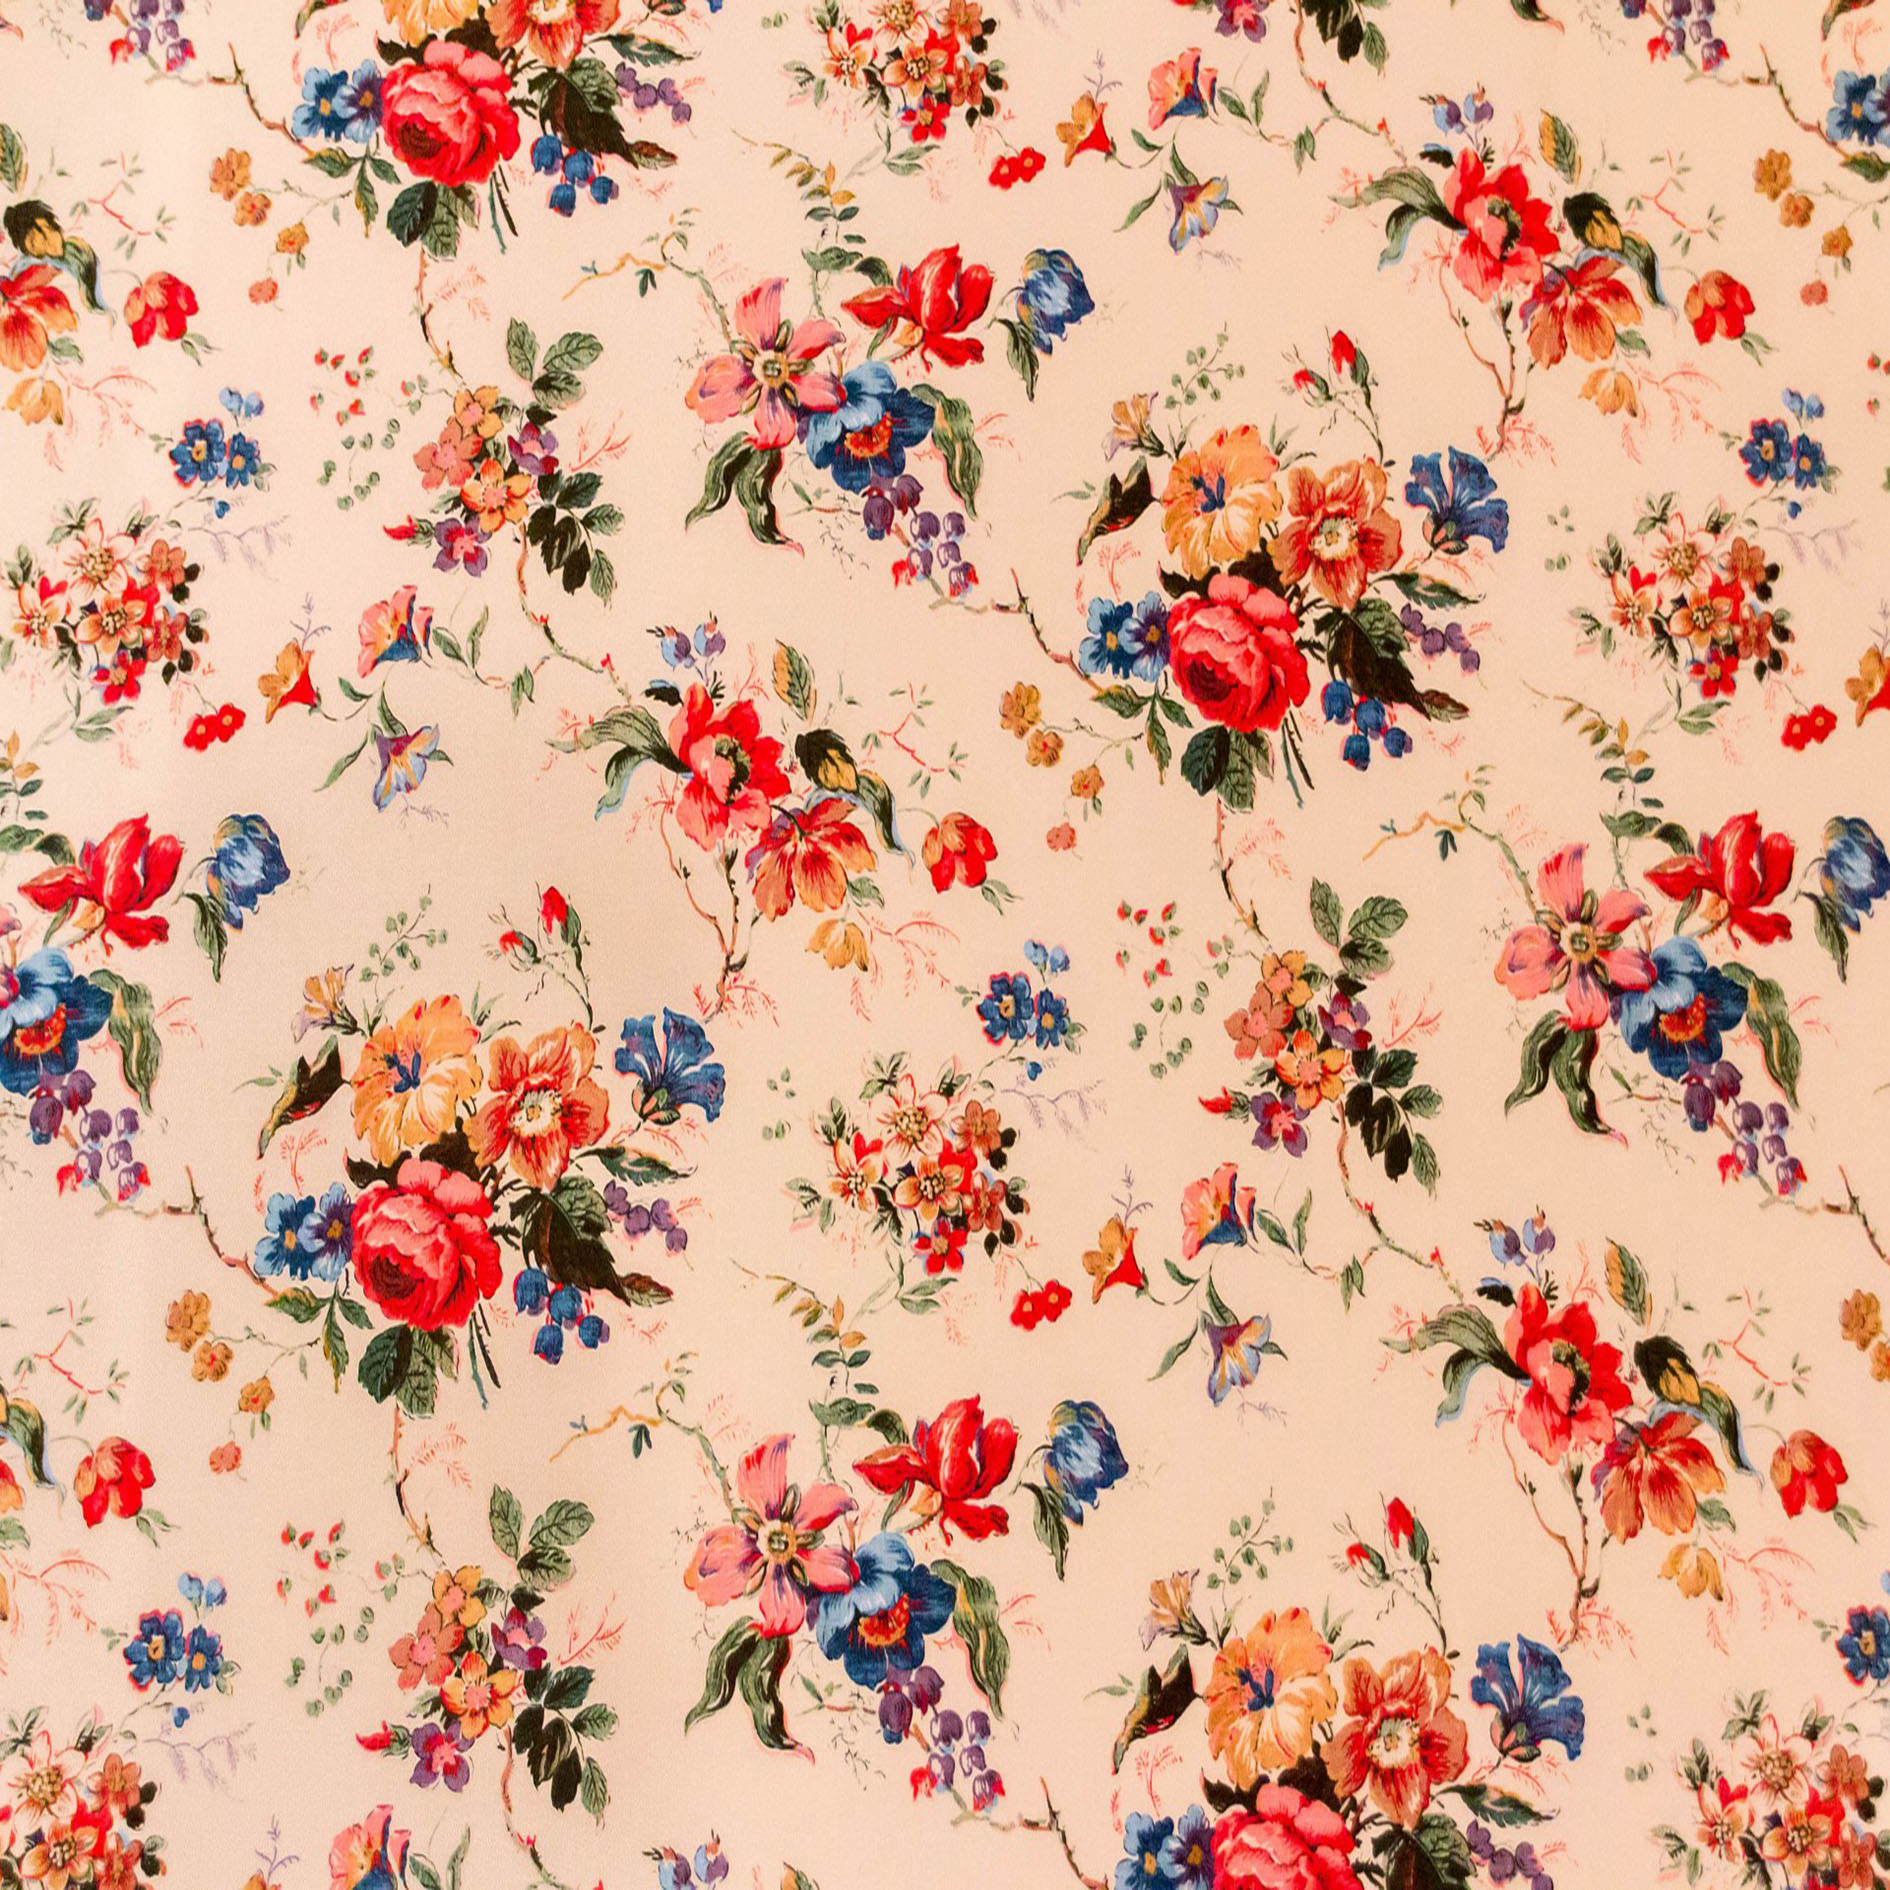 Rosa floral vintage background